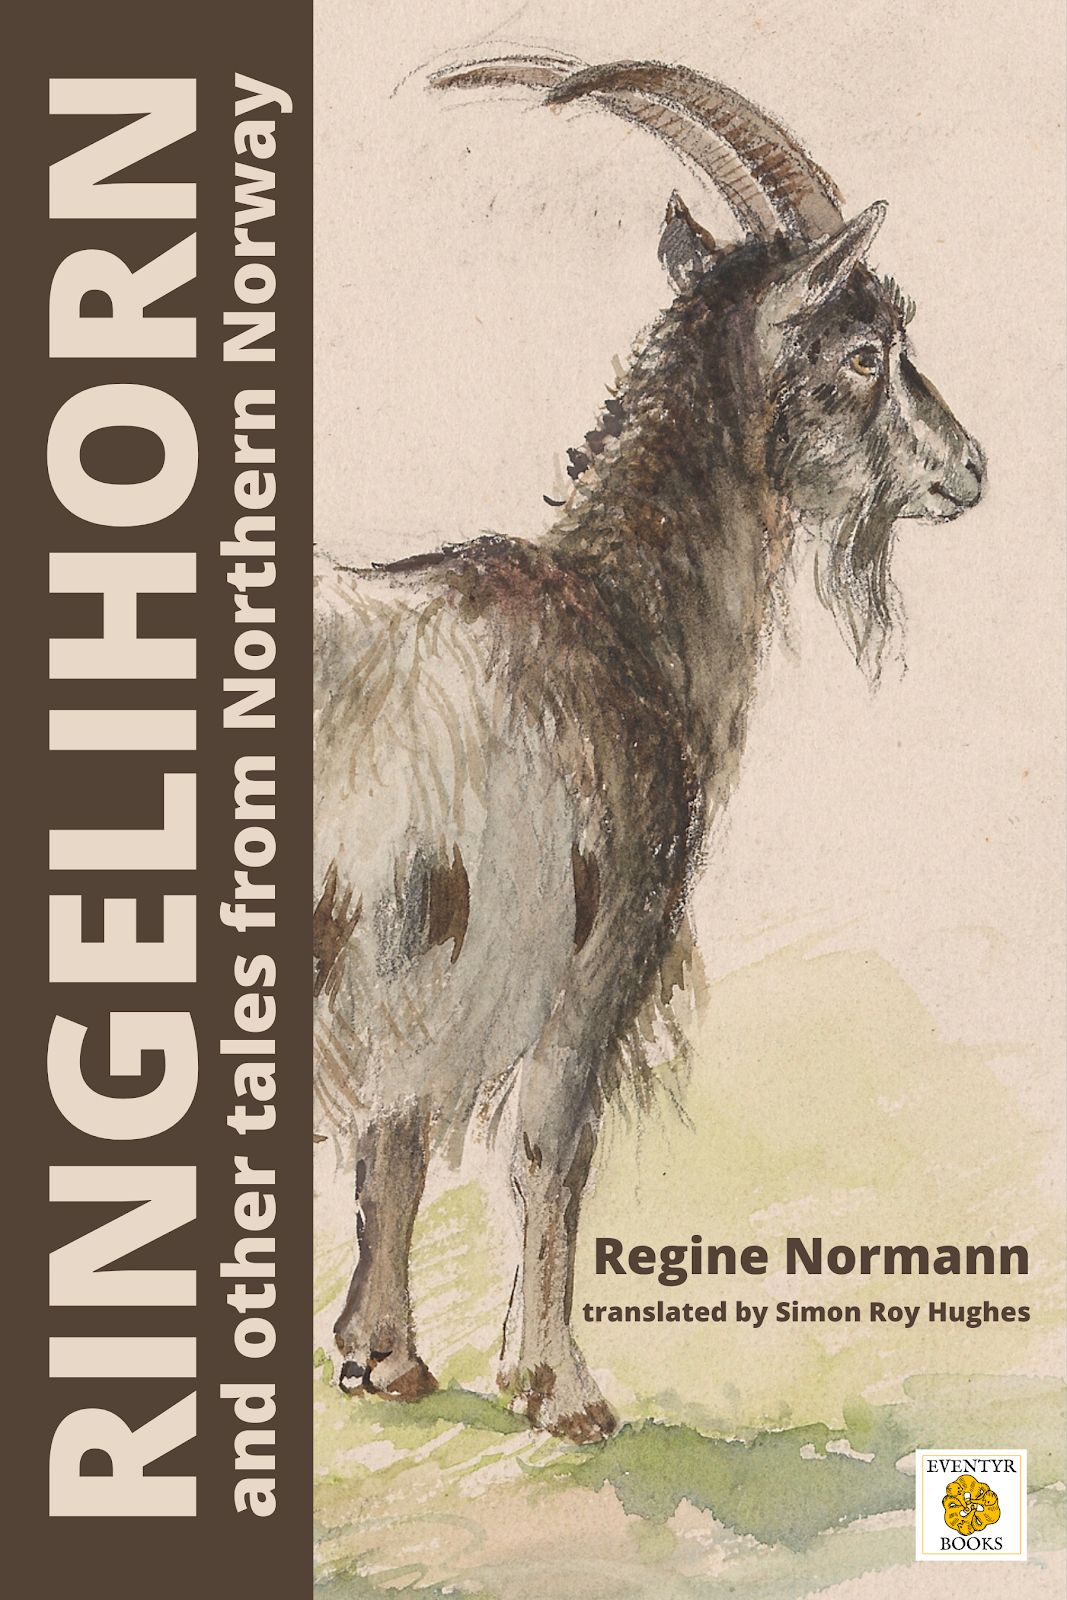 Ringelihorn and Other Tales from Northern Norway